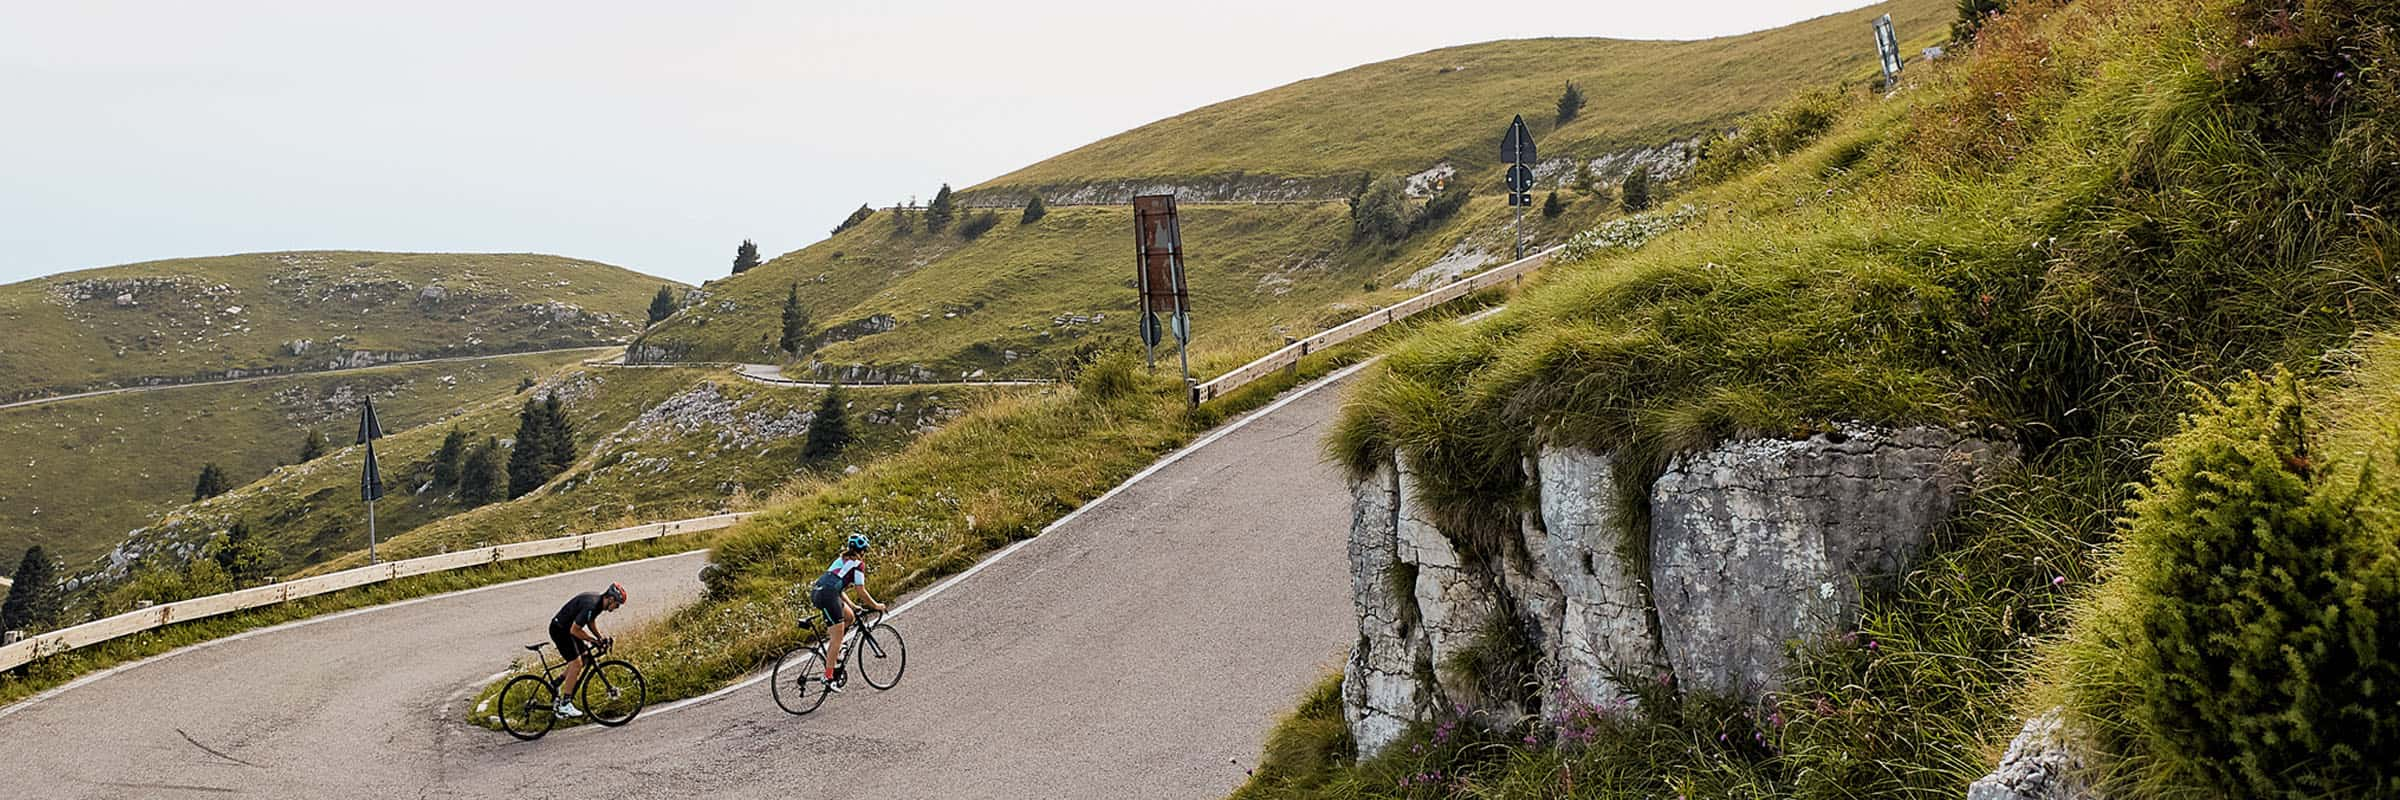 . In the Cradle of Cycling: Touring Castelli's Italian headquarters and riding the nearby Dolomites